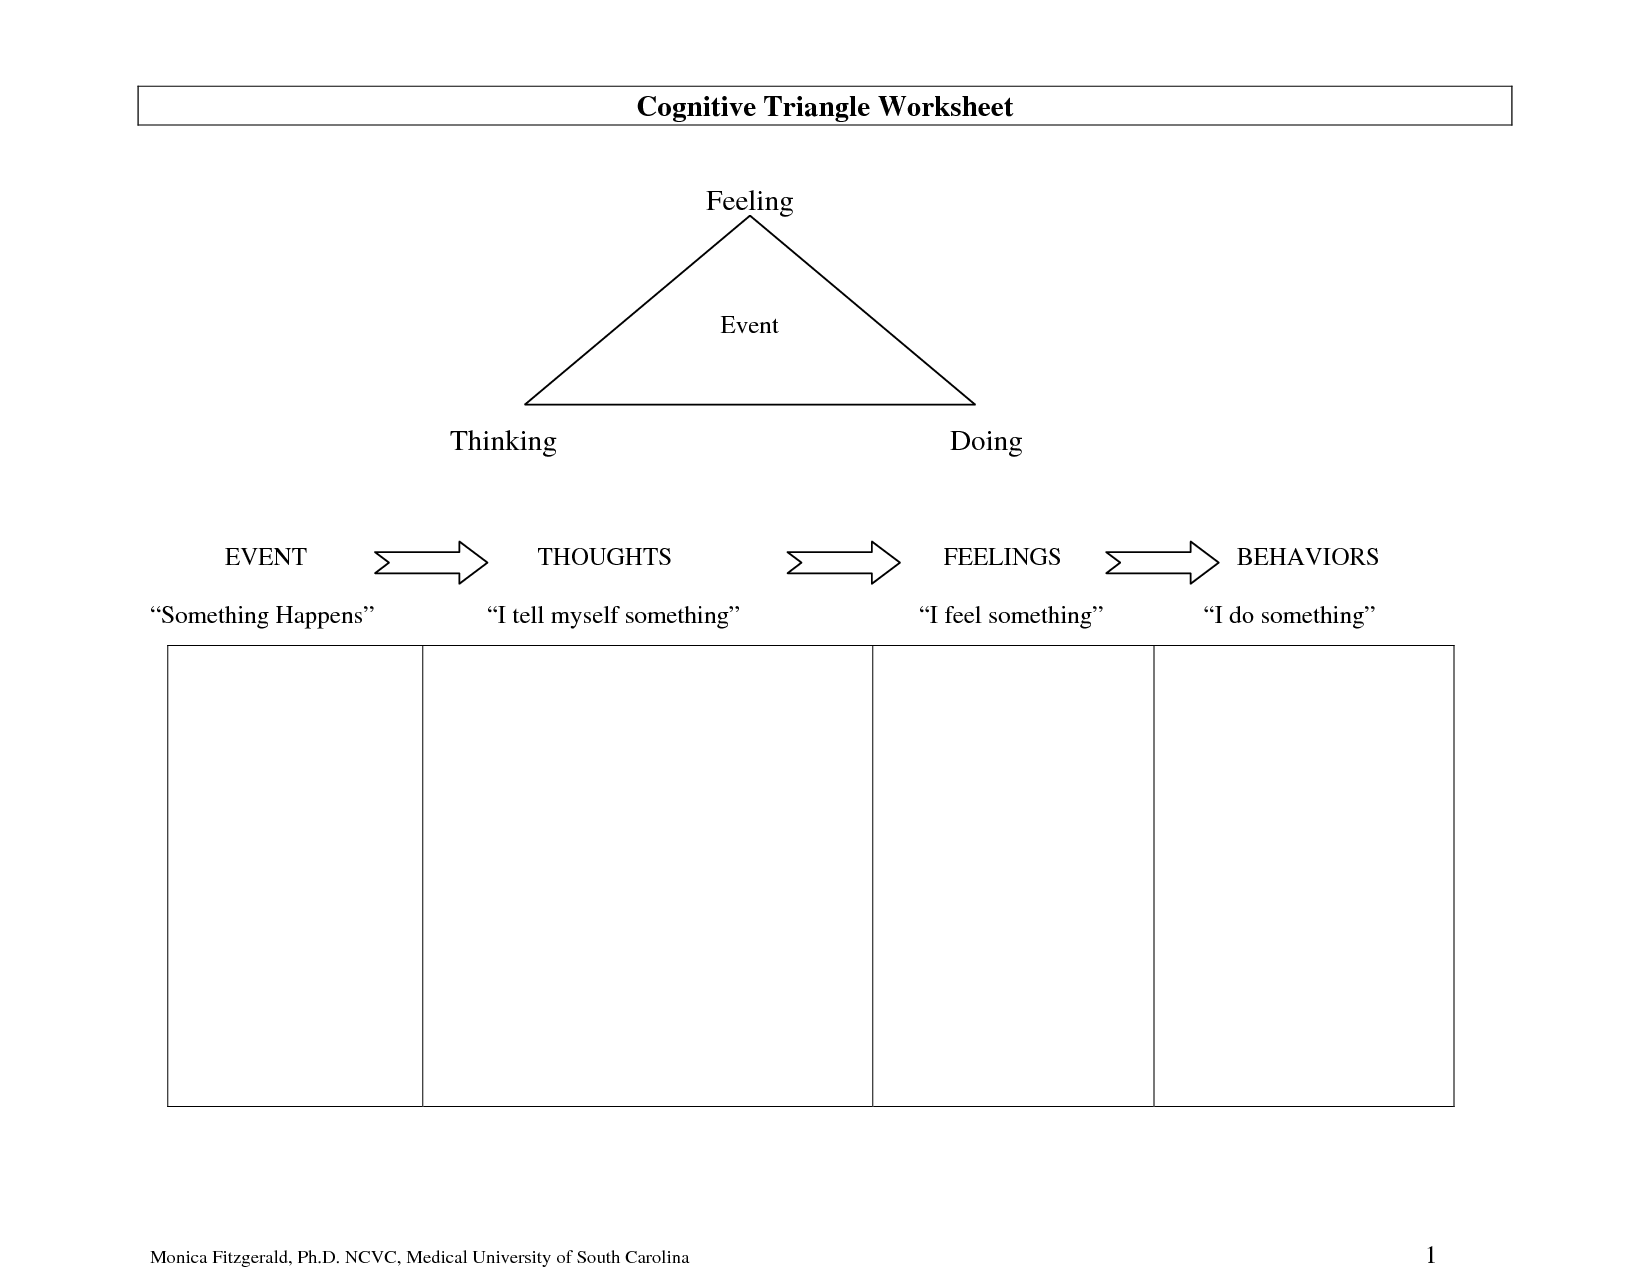 19 Best Images Of Think About It Behavior Worksheet